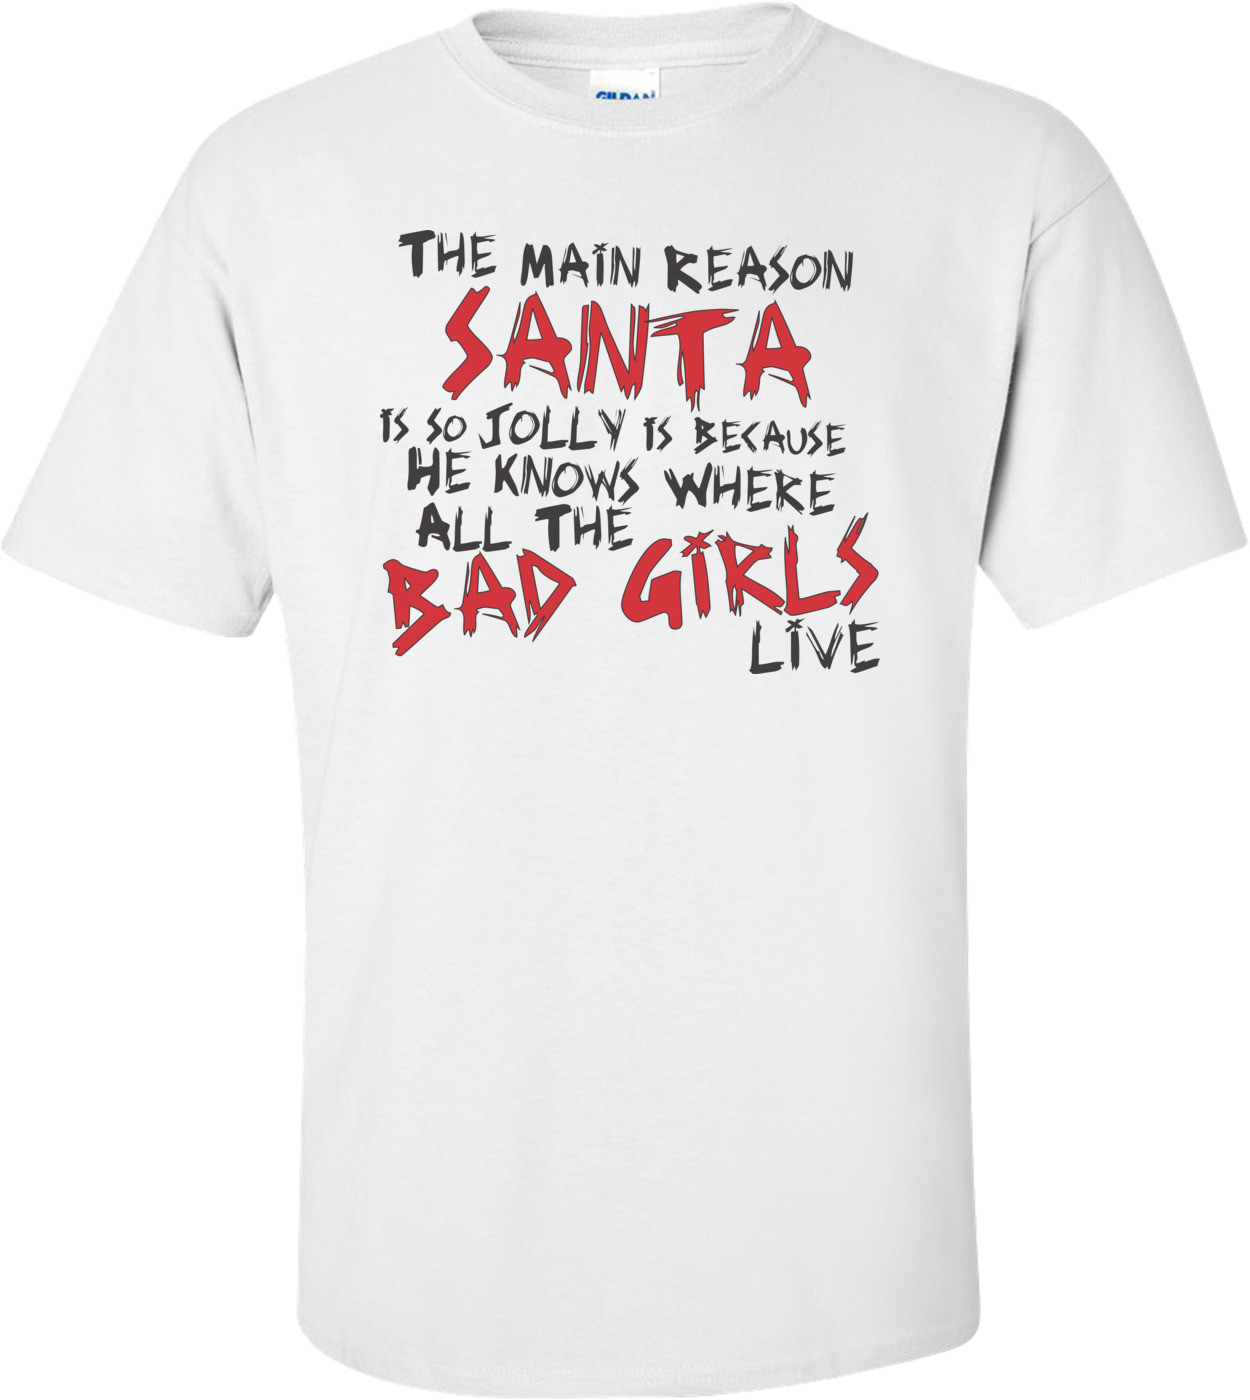 The Main Reason Santa Is So Jolly Is Because He Knows Where All The Bad Girls Live T-shirt